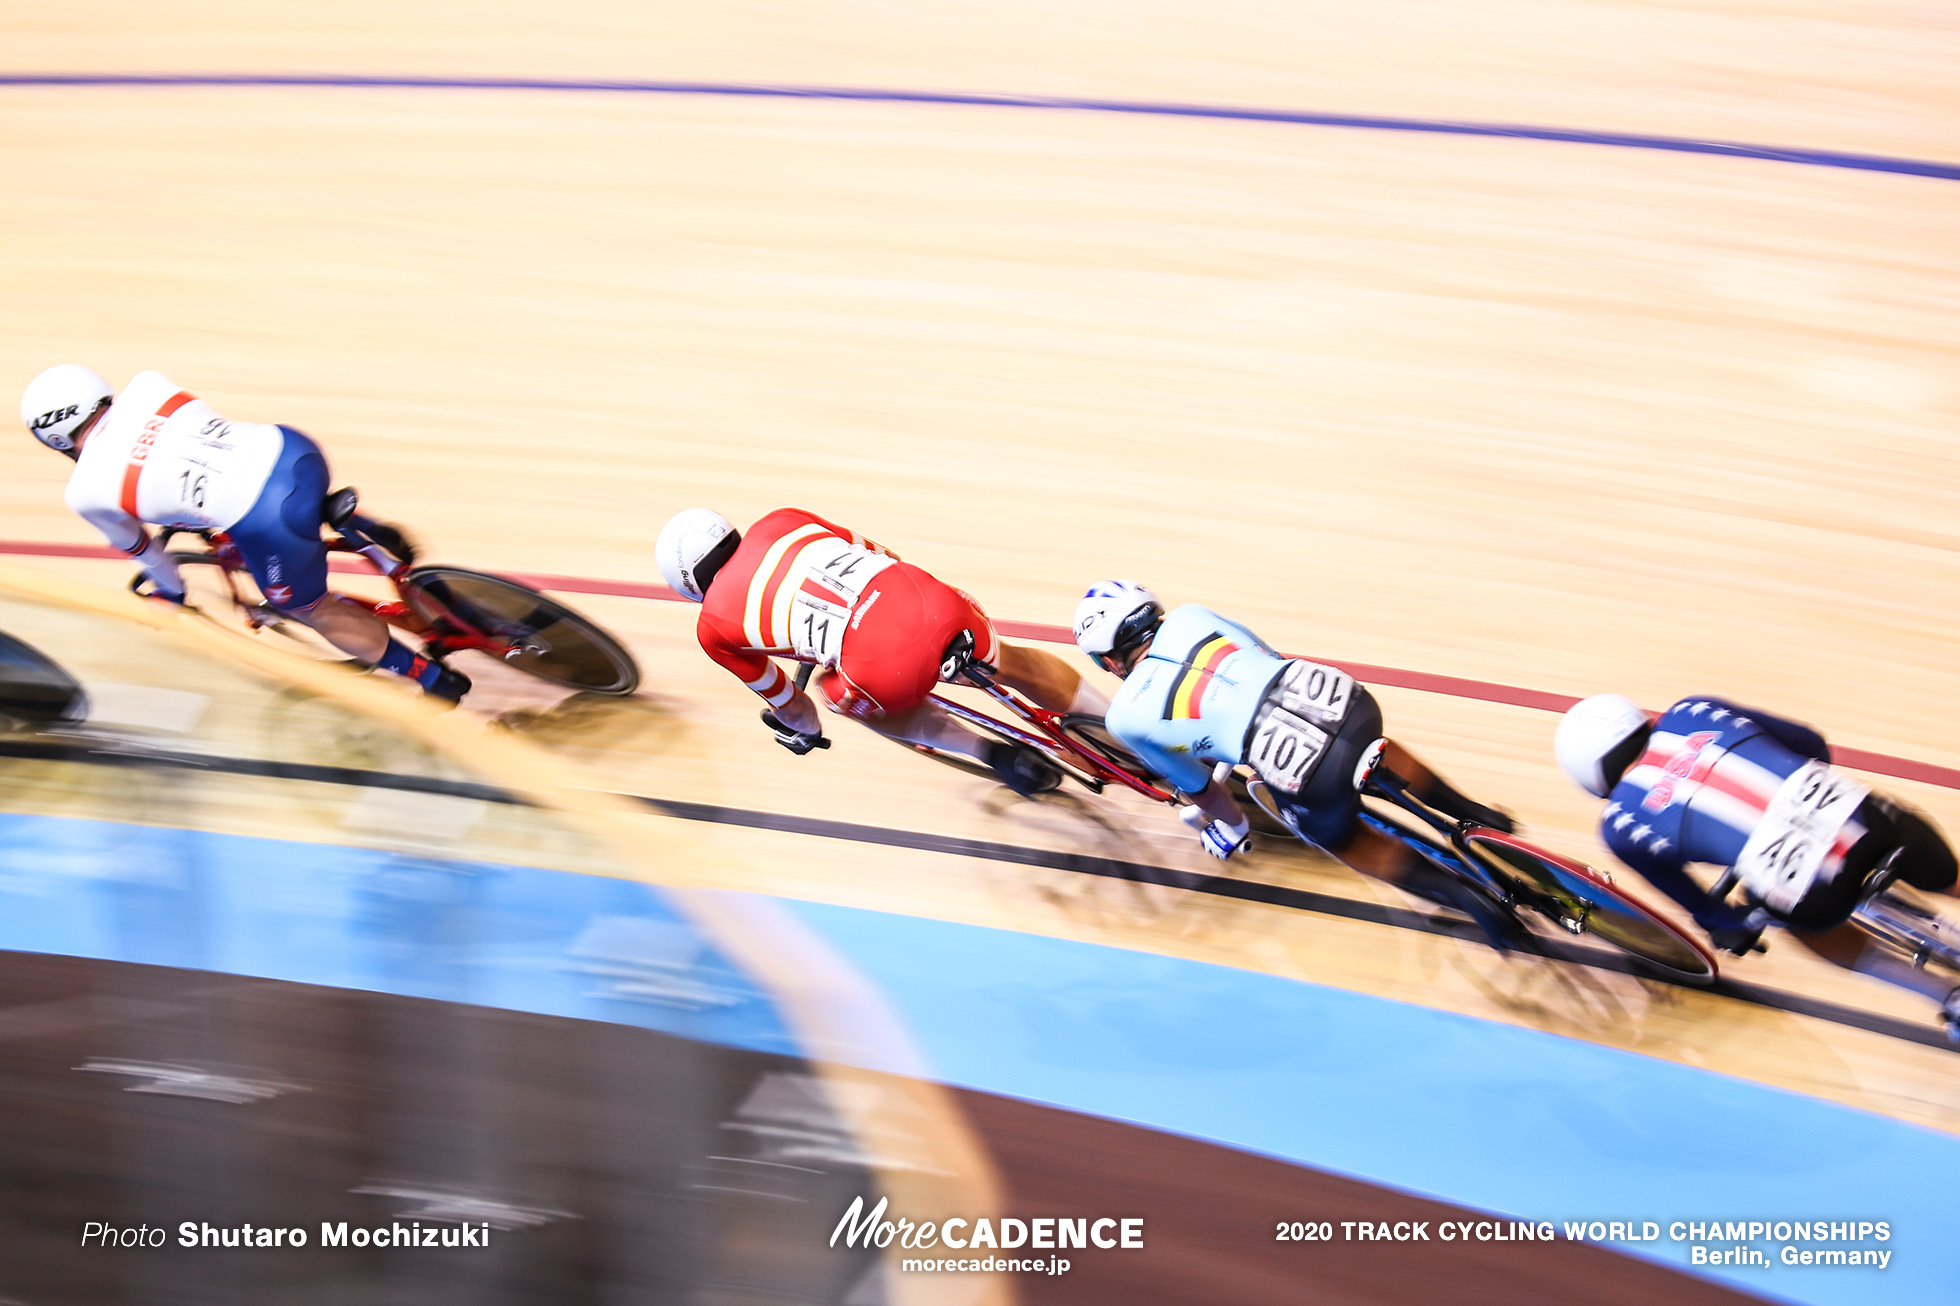 Point Race / Men's Omnium / 2020 Track Cycling World Championships